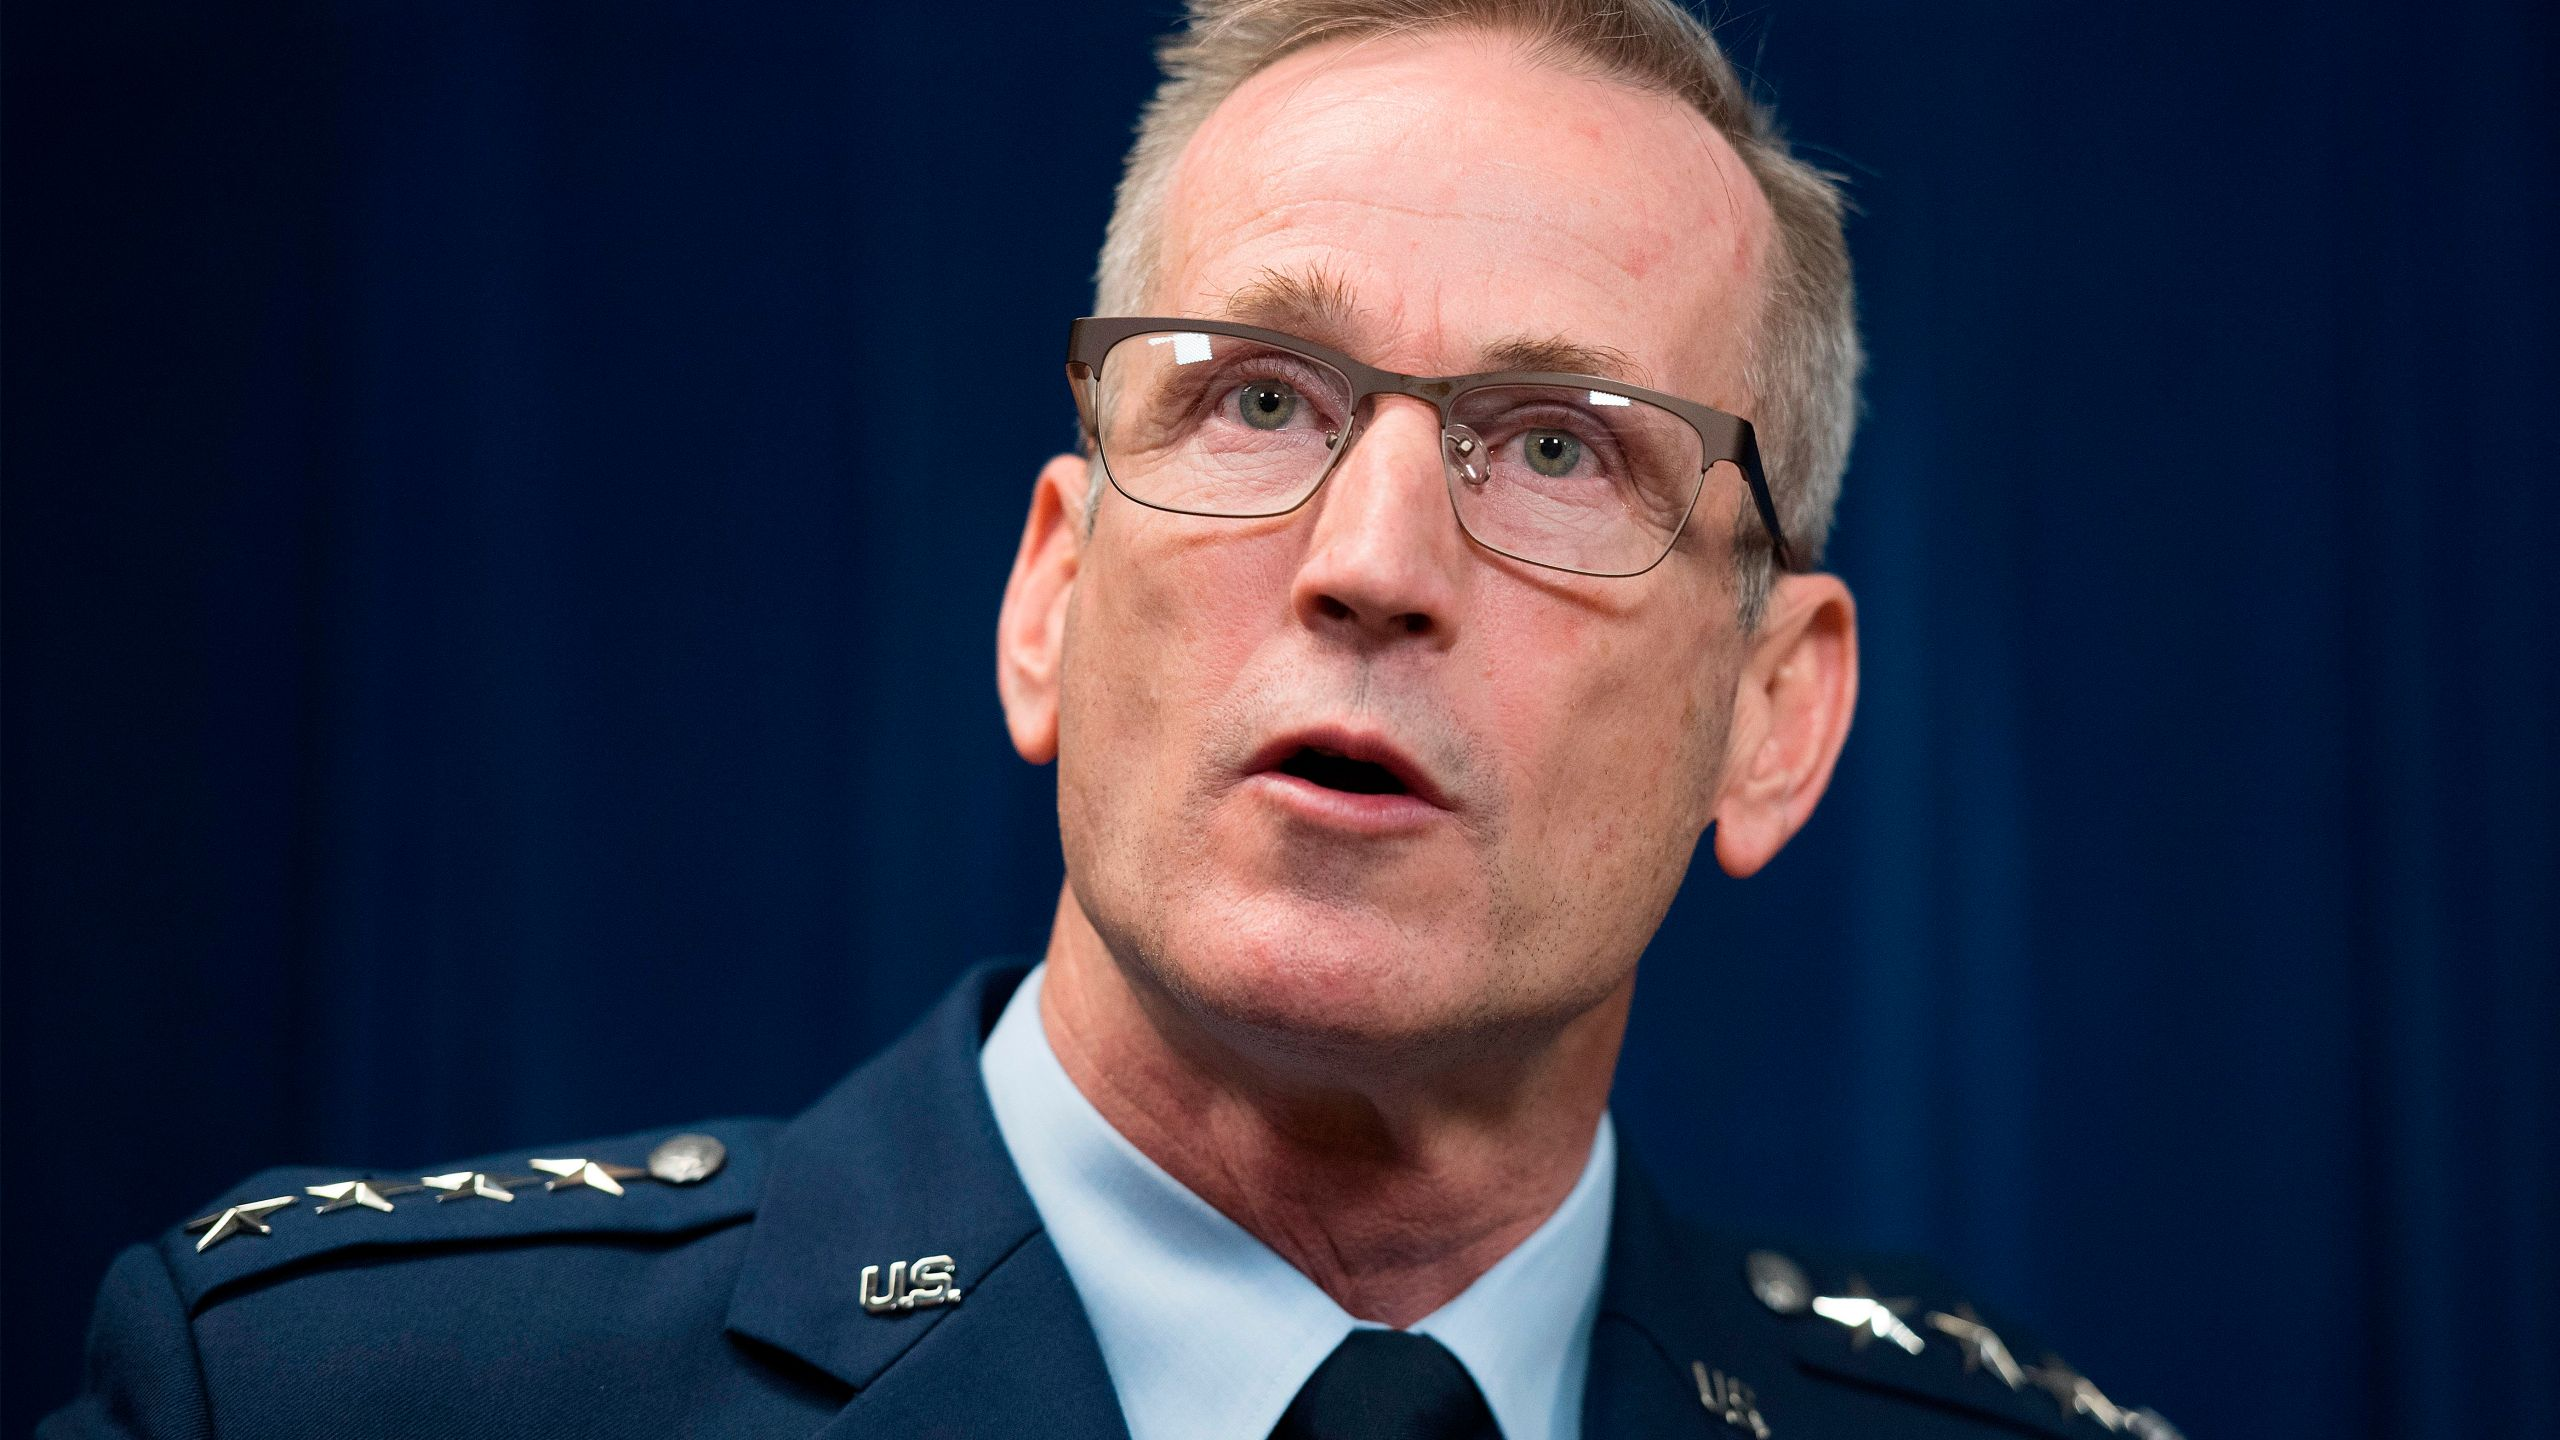 North American Aerospace Defense Command General Terrence John O'Shaughnessy speaks about the Department of Defense deployment to the Southwest border during a press conference in Washington, D.C. on Oct. 29, 2018. (Credit: Jim Watson/AFP/Getty Images)